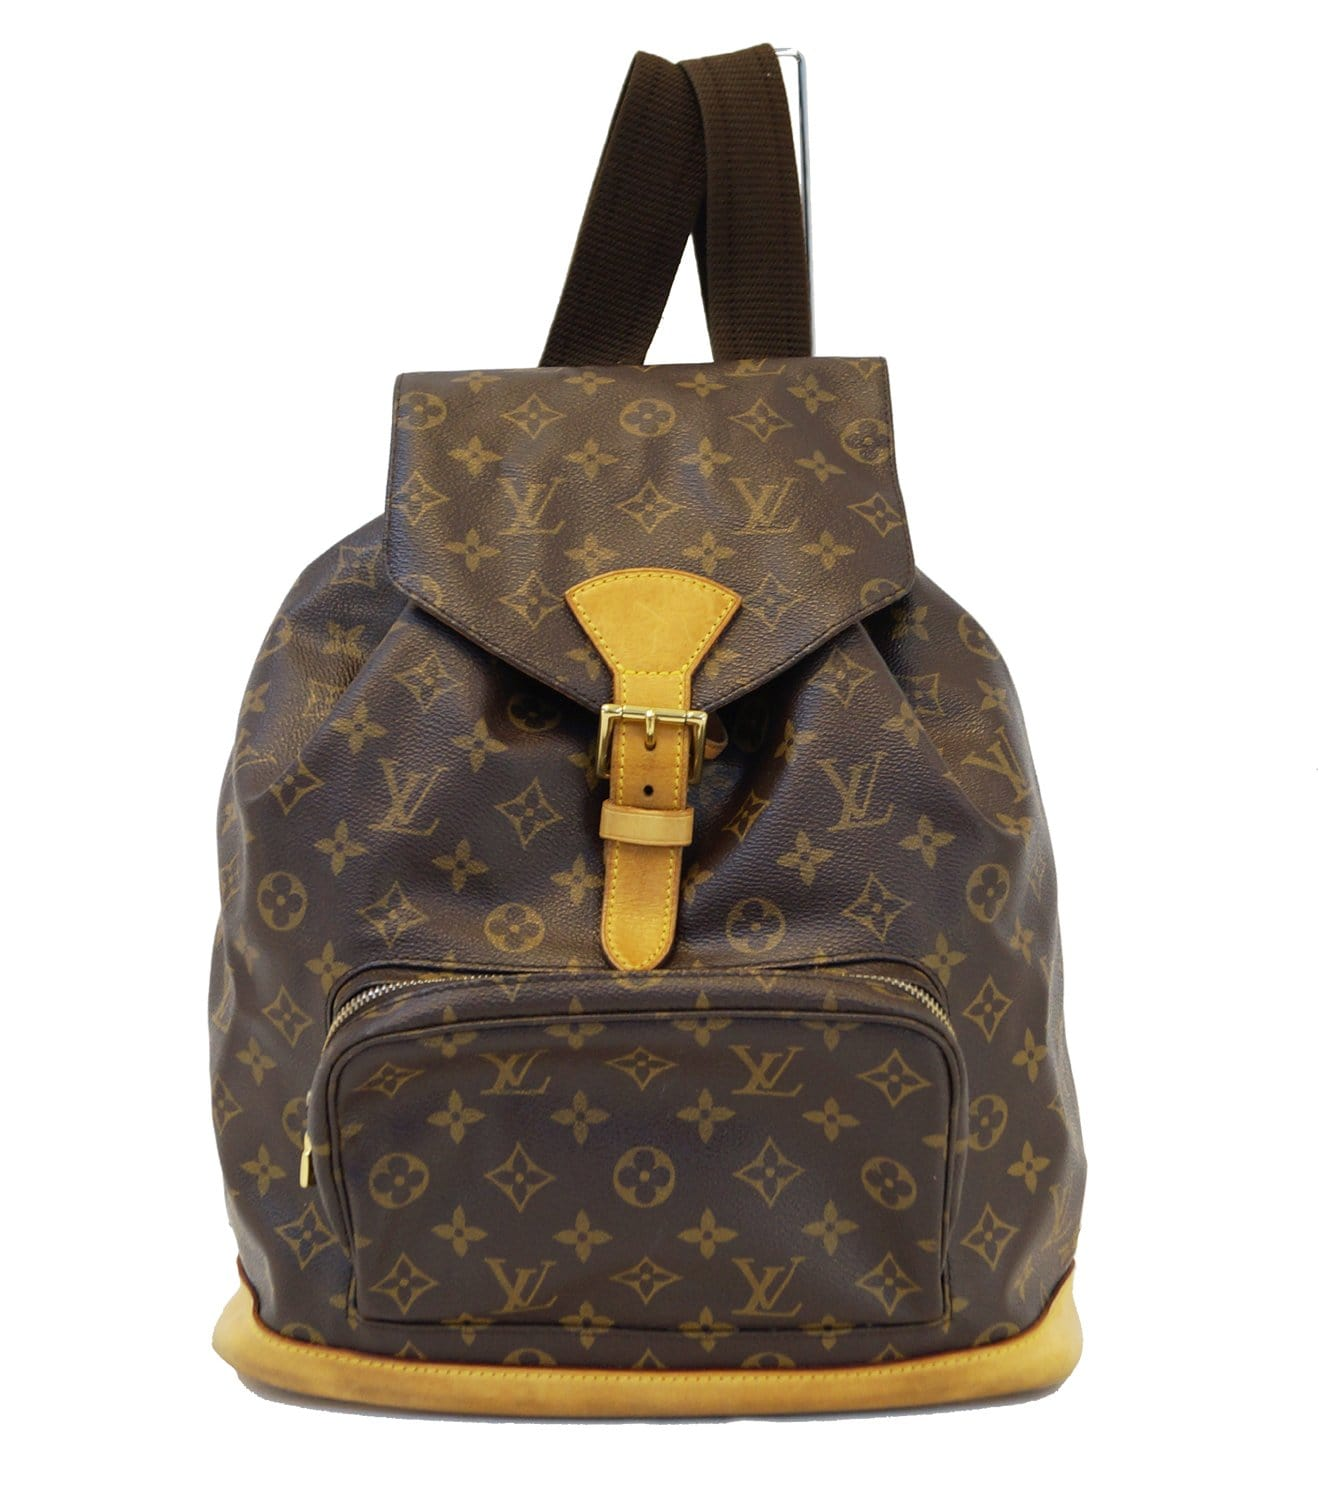 Authentic LOUIS VUITTON Monogram Brown Montsouris GM Backpack Bag TT13 918ad305cfe88